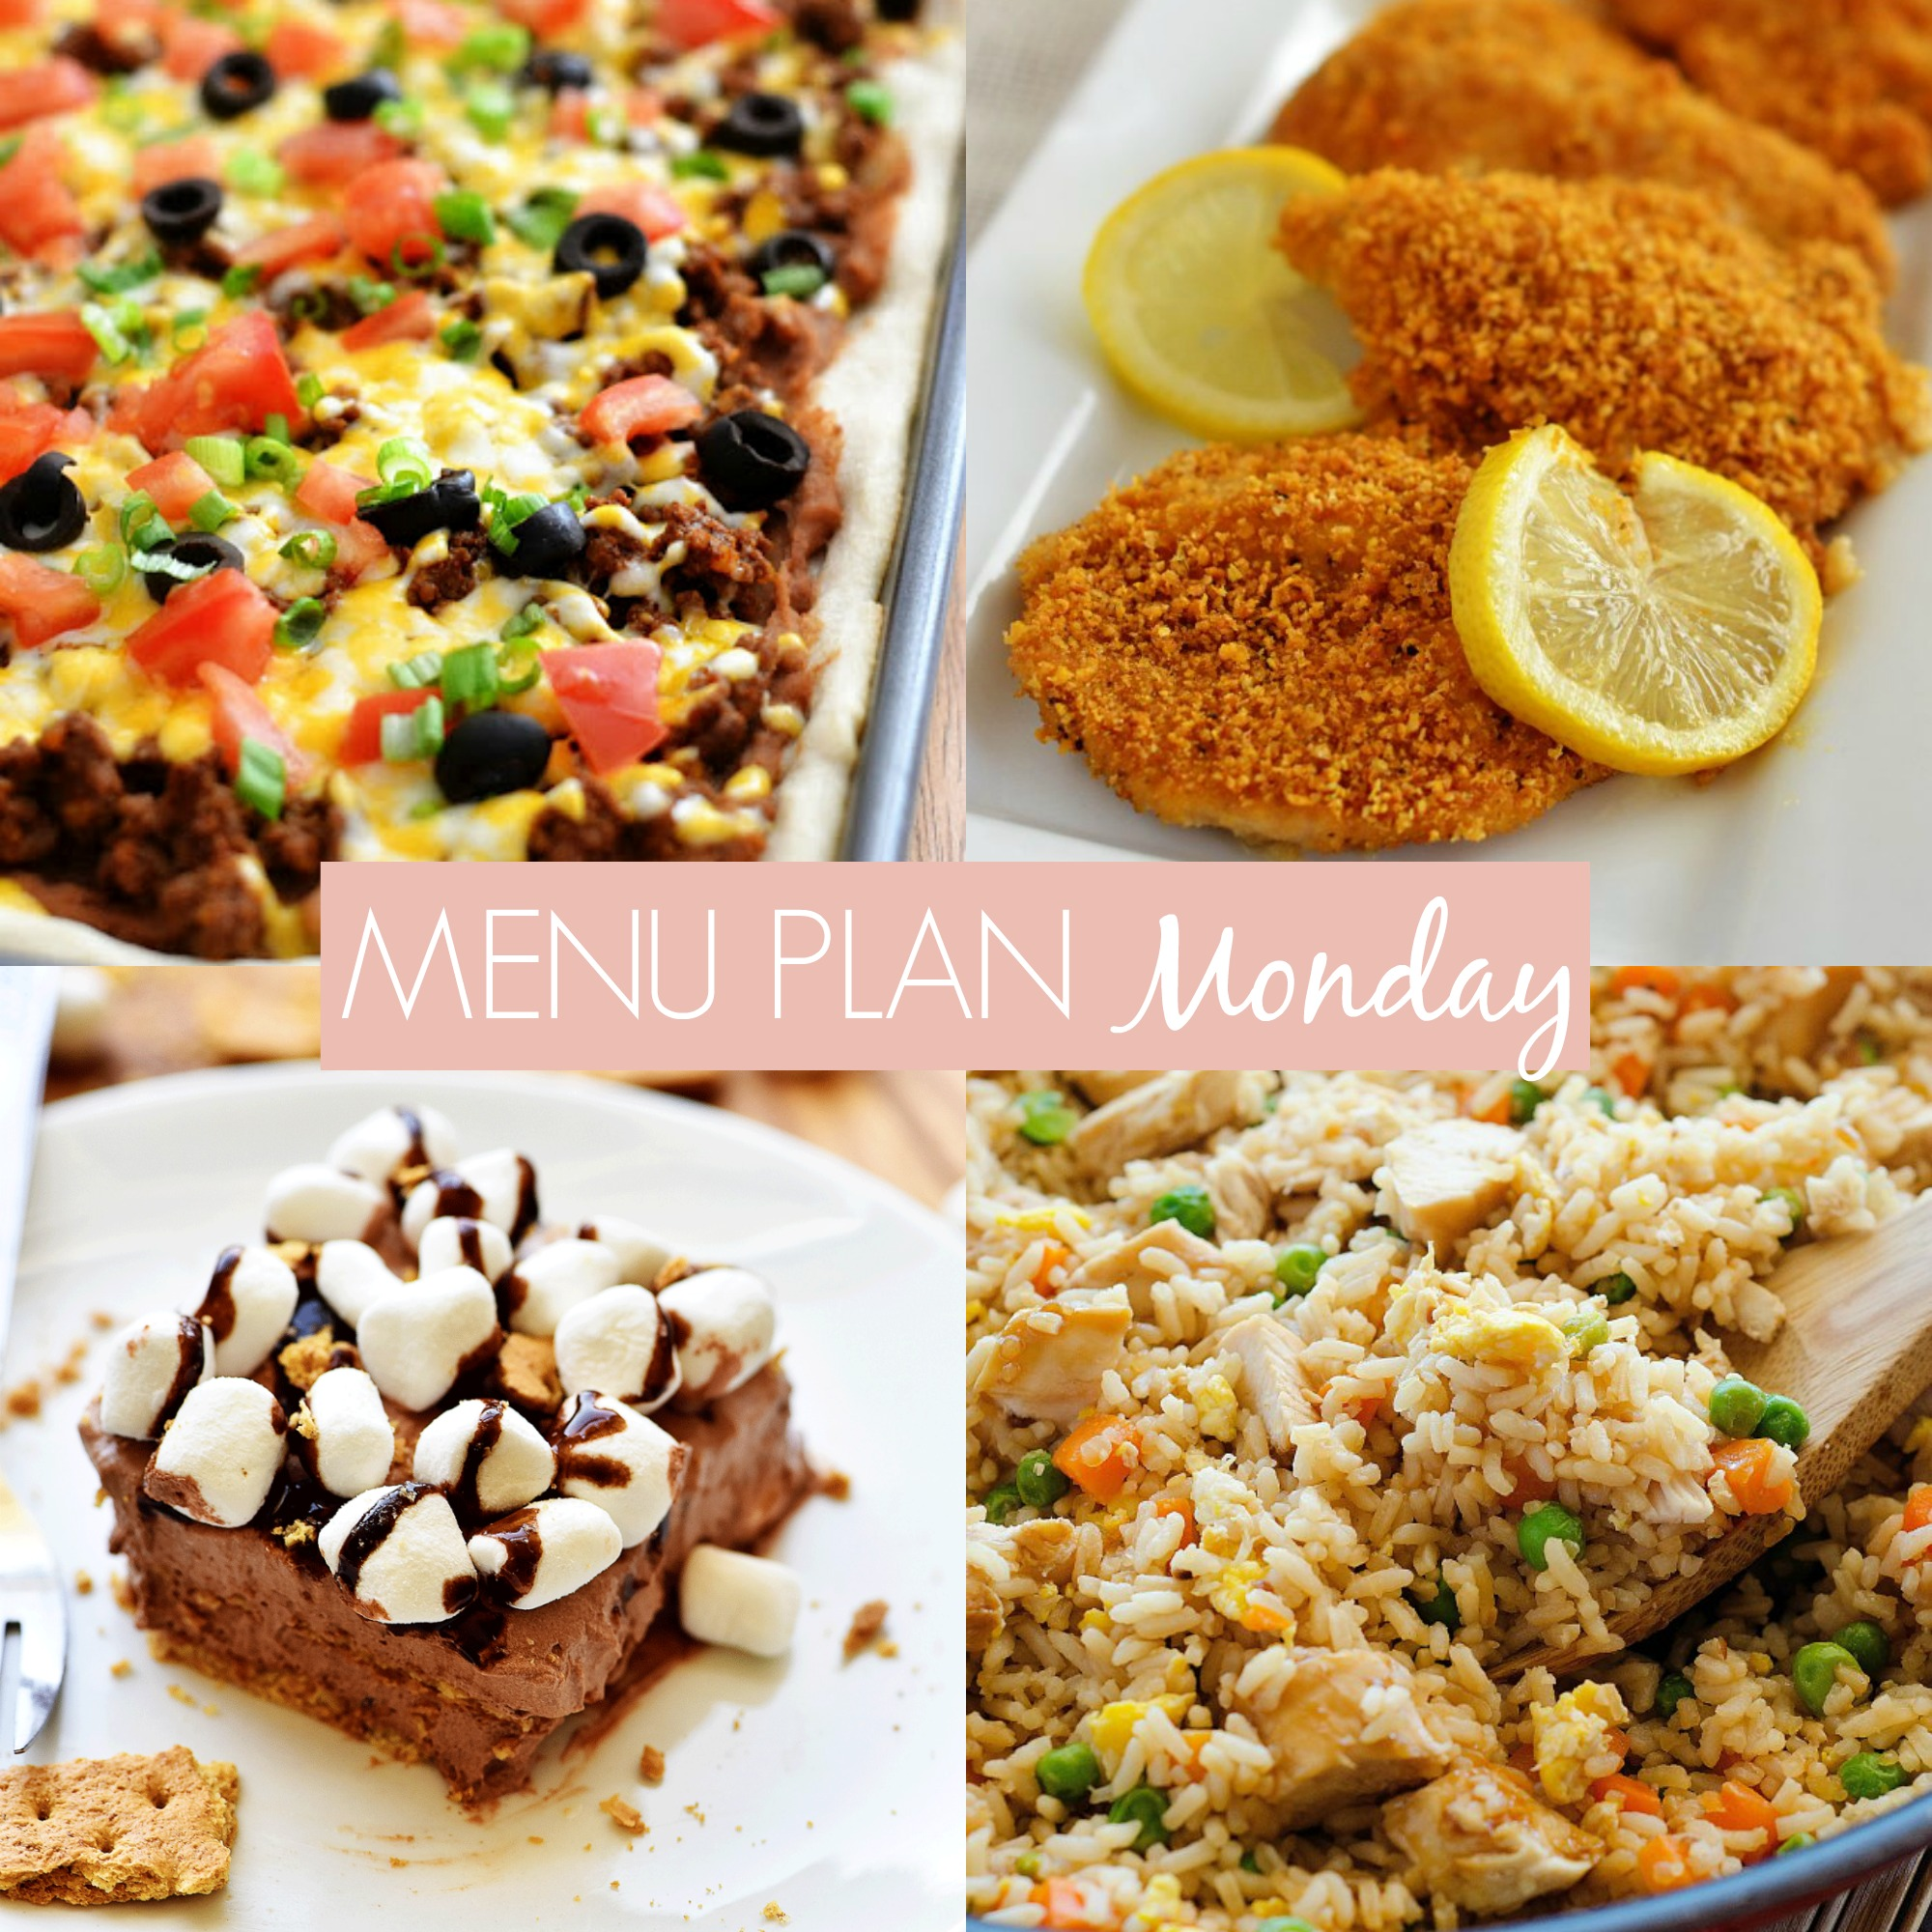 Menu Plan Monday #252